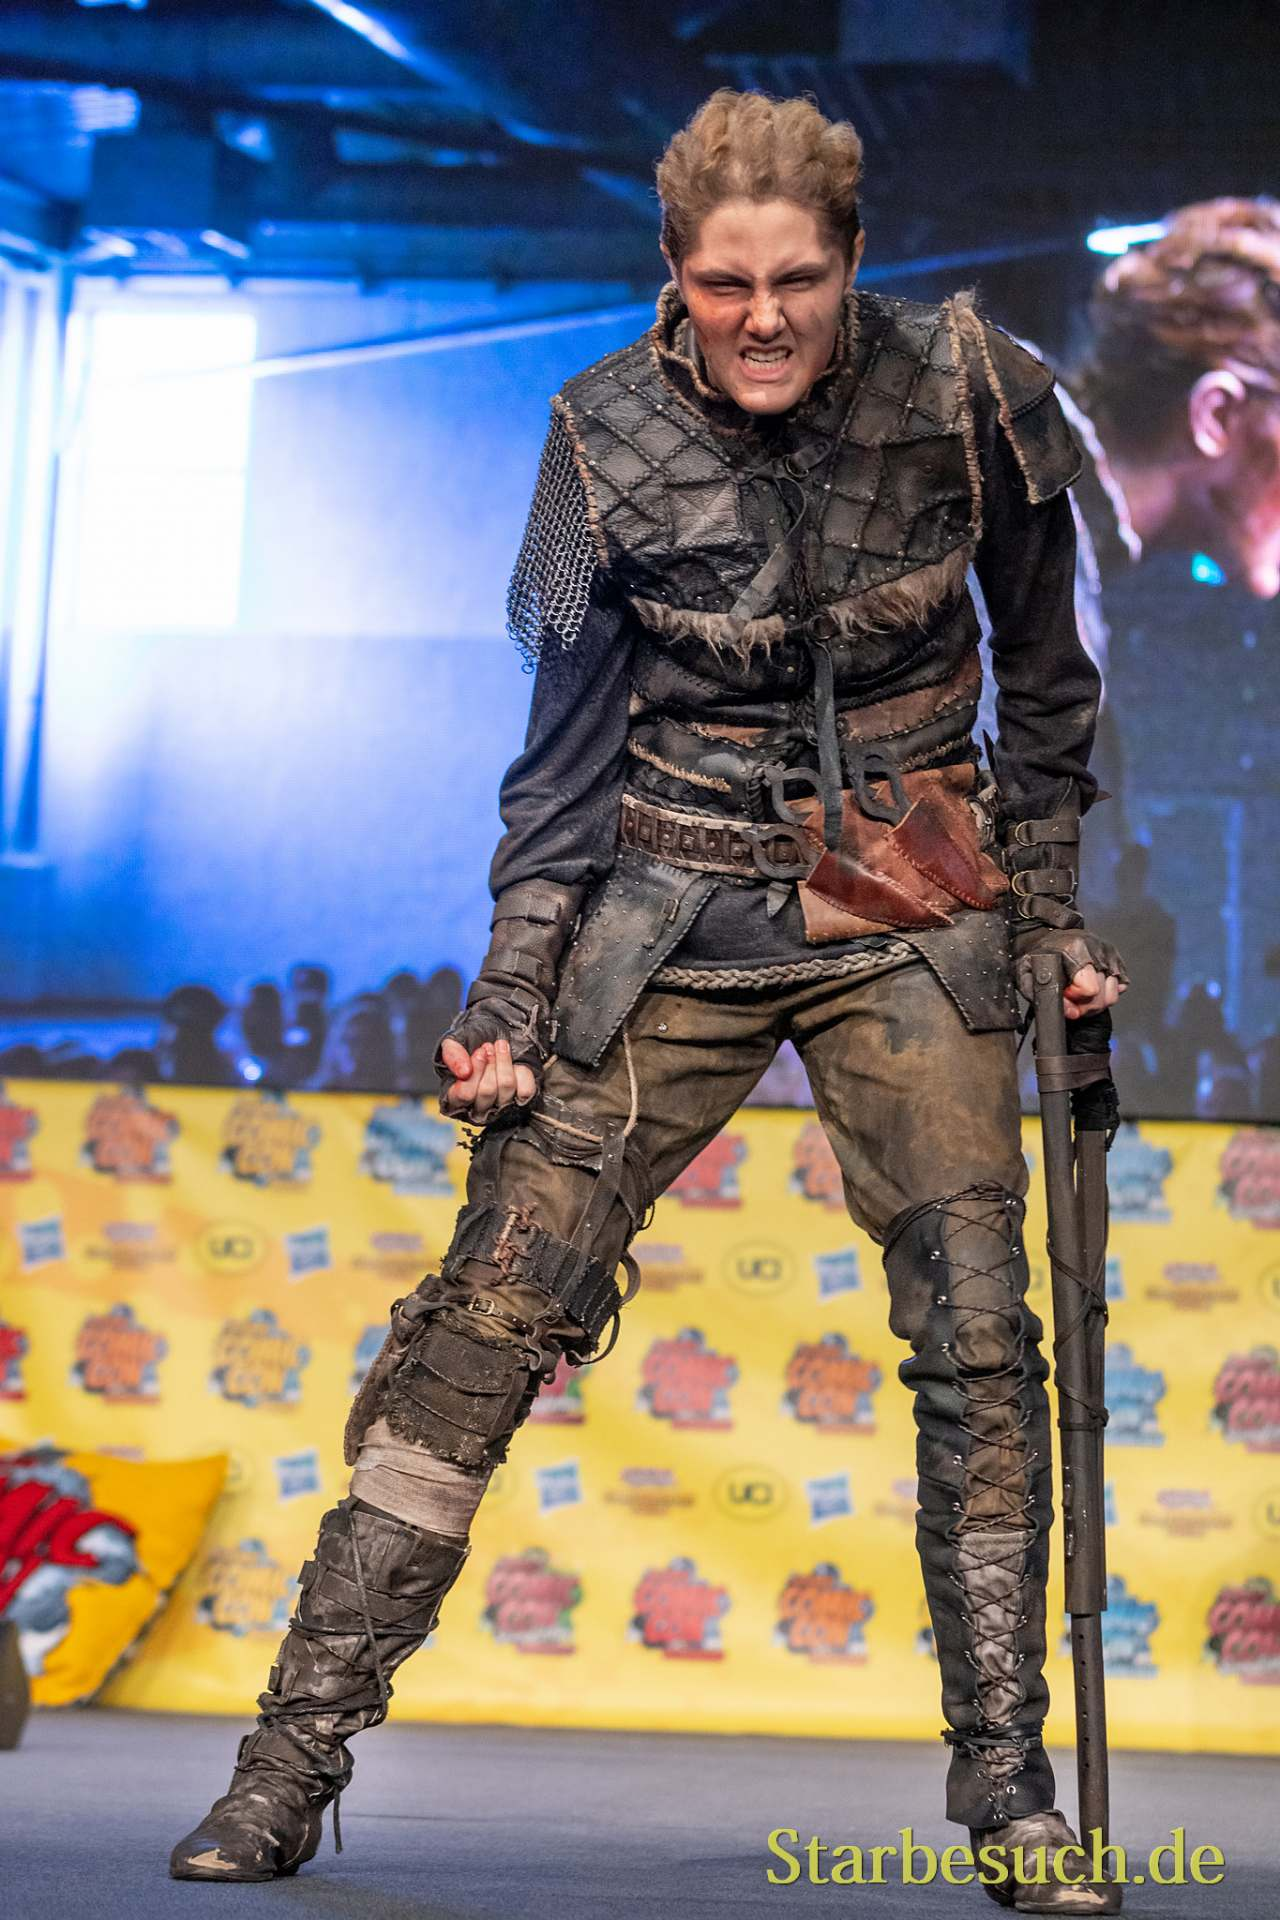 DORTMUND, GERMANY - December 1st 2018: Cosplayer The Trashqueen portrays the character Ivar the Boneless from Vikings (TV Show) at German Comic Con Dortmund, a two day fan convention